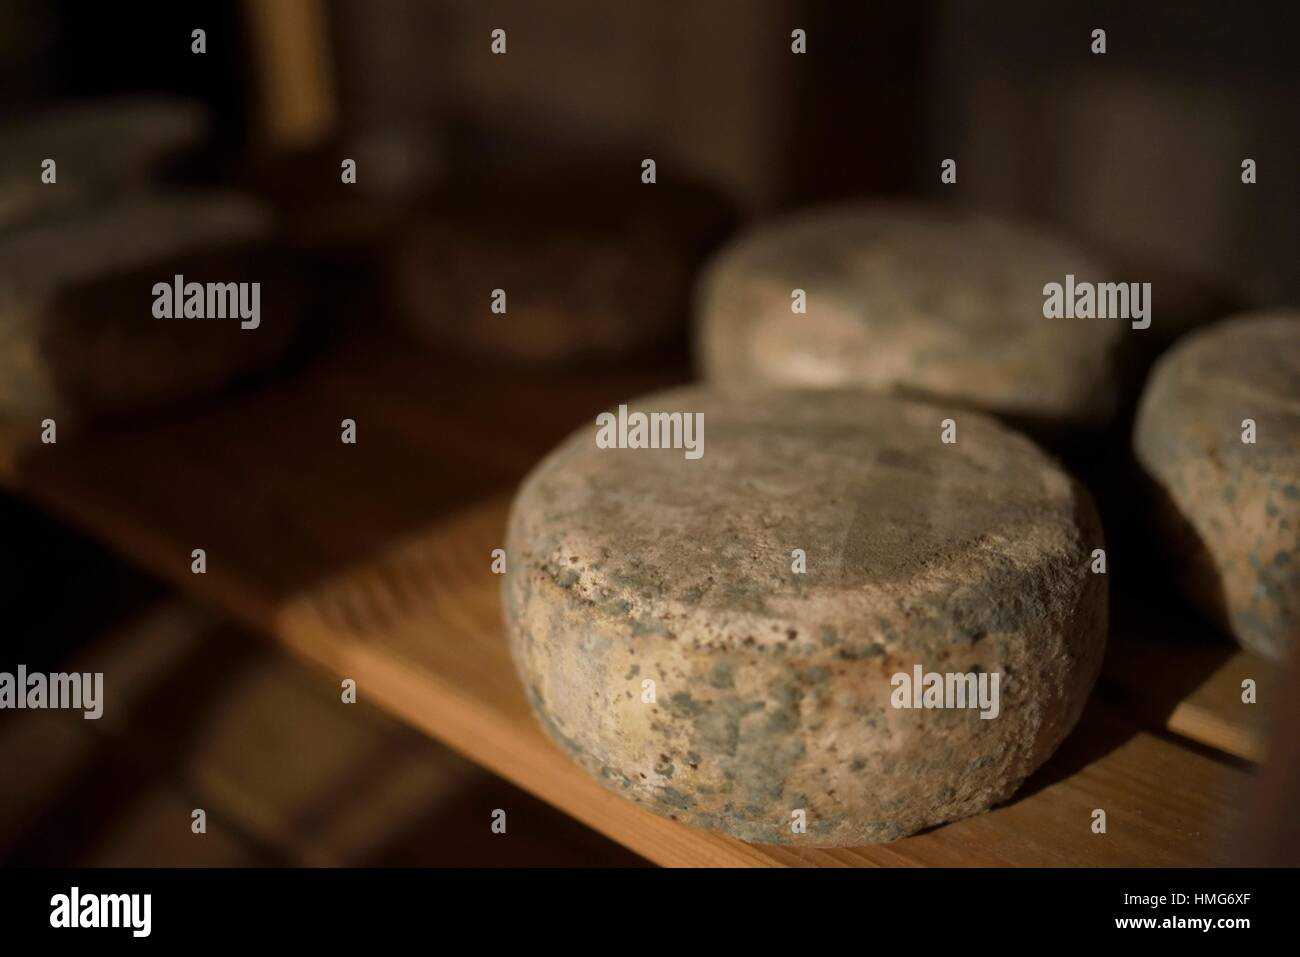 Artisan cheese maturing indoor. North valleys of Spain. - Stock Image